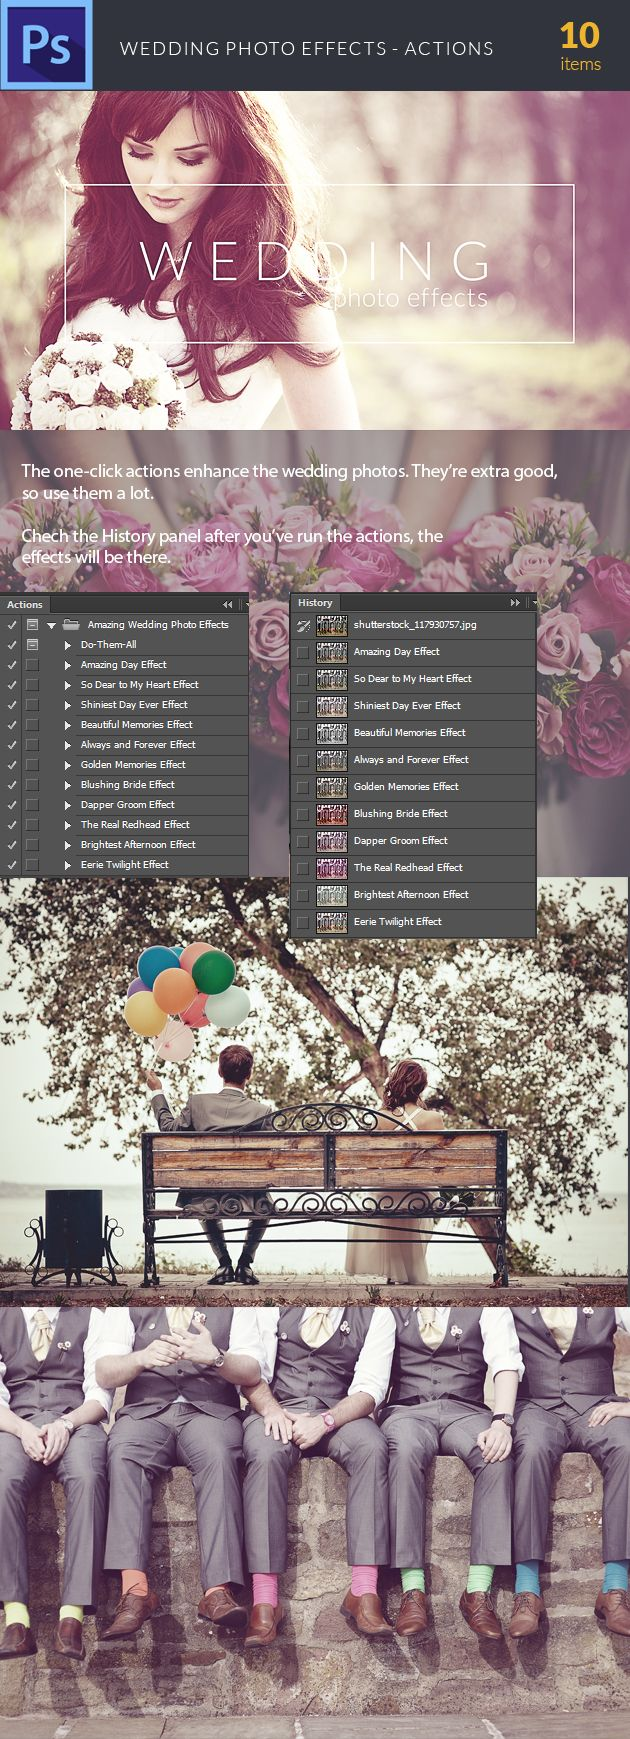 The Wedding Photo Effect Photoshop Action can be found here: https://www.inkydeals.com/deal/1000-photoshop-resources-bundle/